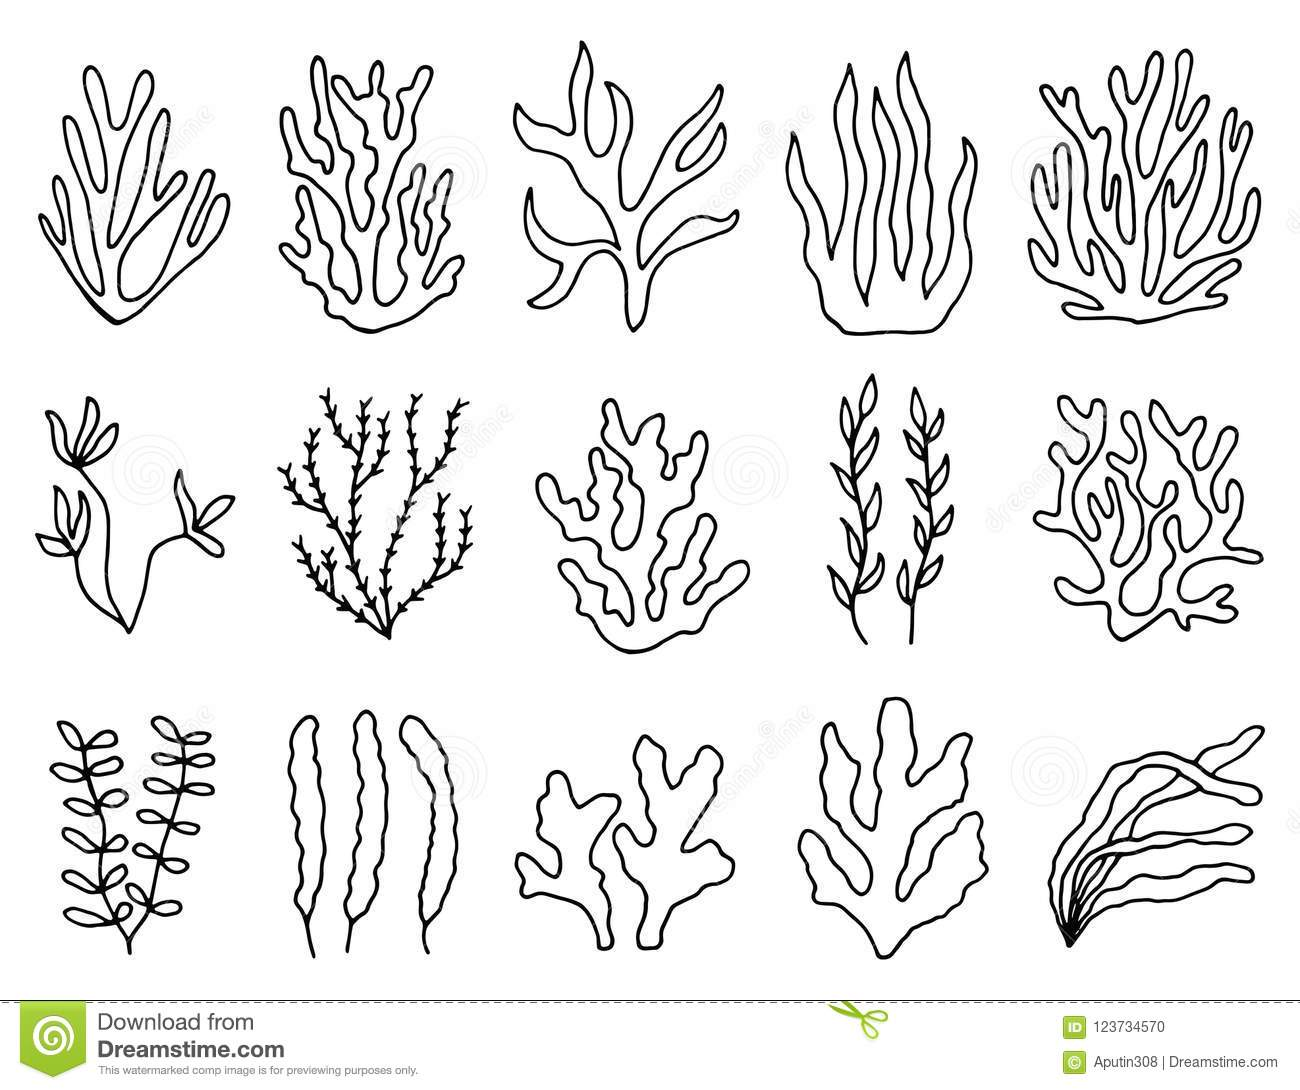 Seaweed Outline In Isolation Linear Drawing Set Of